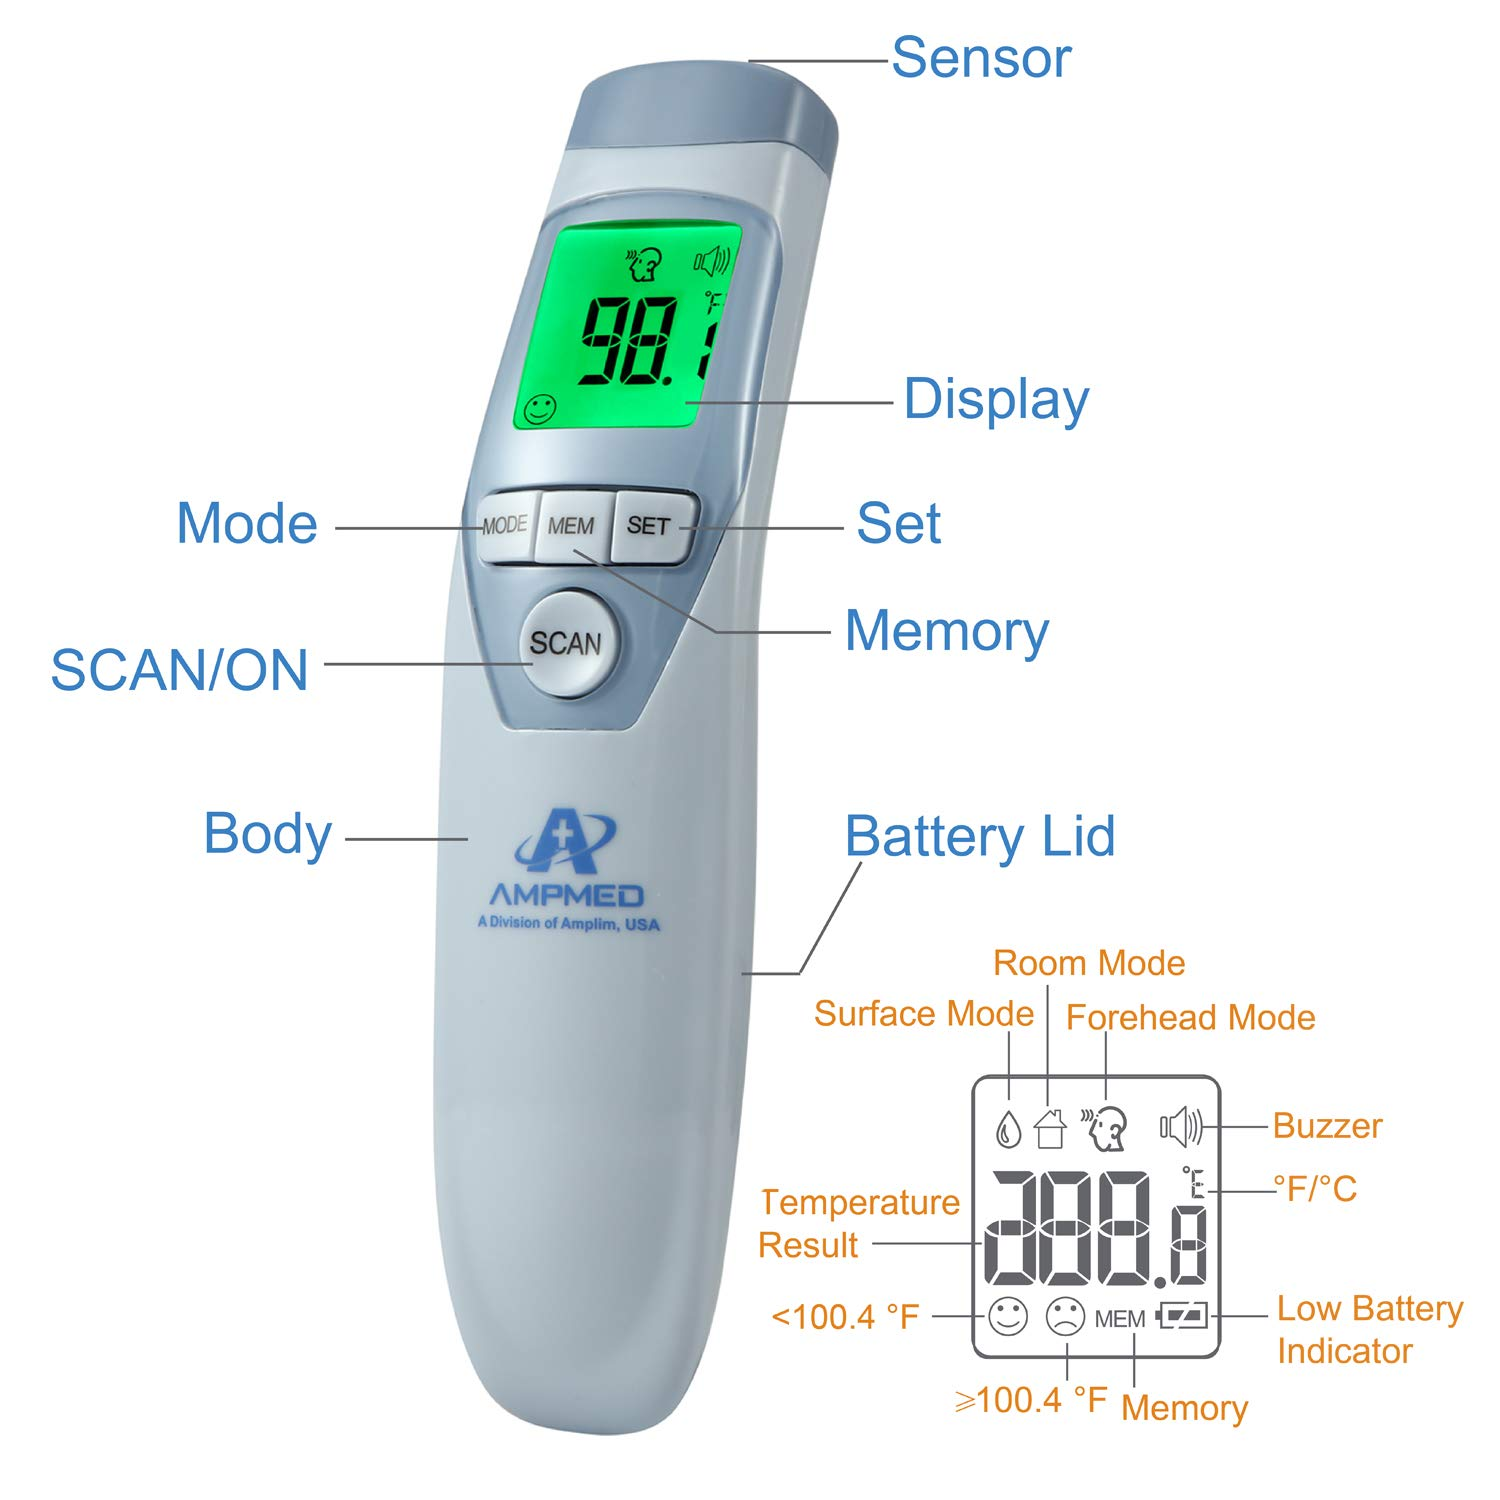 Hospital Medical Grade No Touch Non Contact Digital Infrared Temporal Forehead Thermometer + Case for Baby/Adult/Kid/Toddler/Infant/Nurse. Amplim Best Head Fever Temperature Termometro